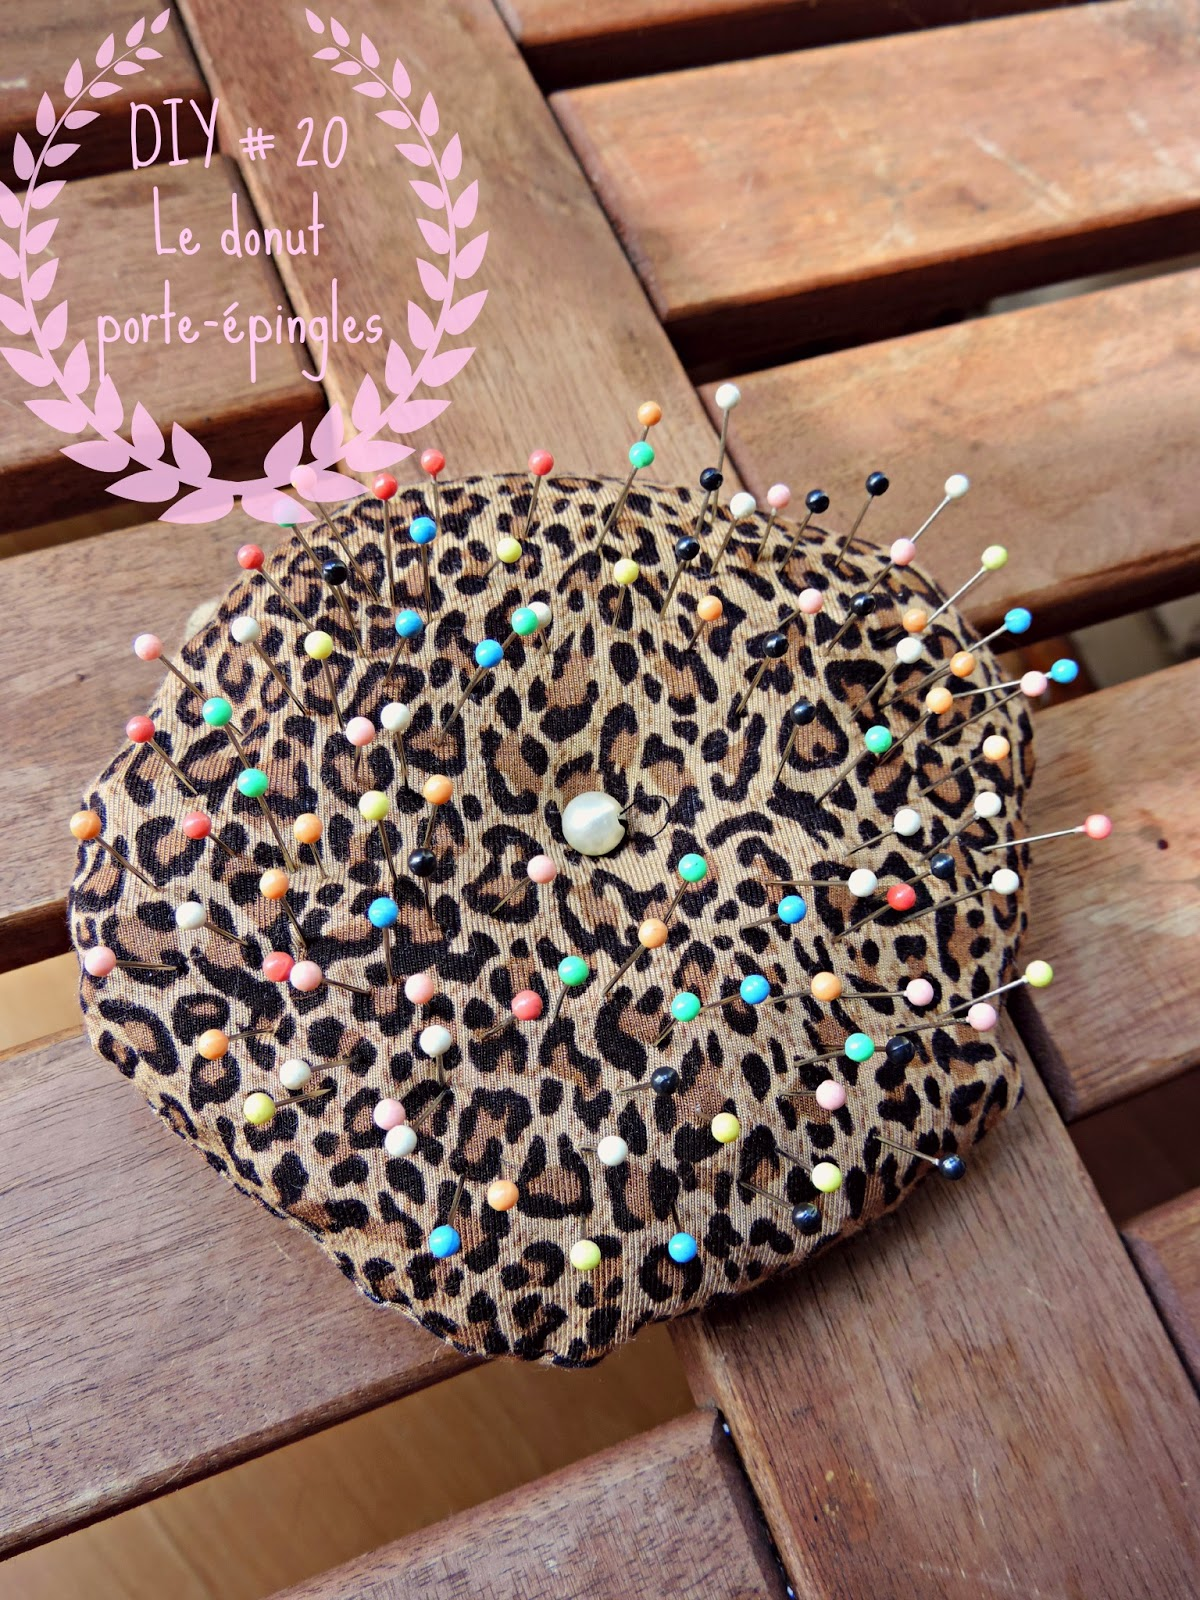 http://mynameisgeorges.blogspot.com/2014/09/diy-20-le-donut-porte-epingles.html